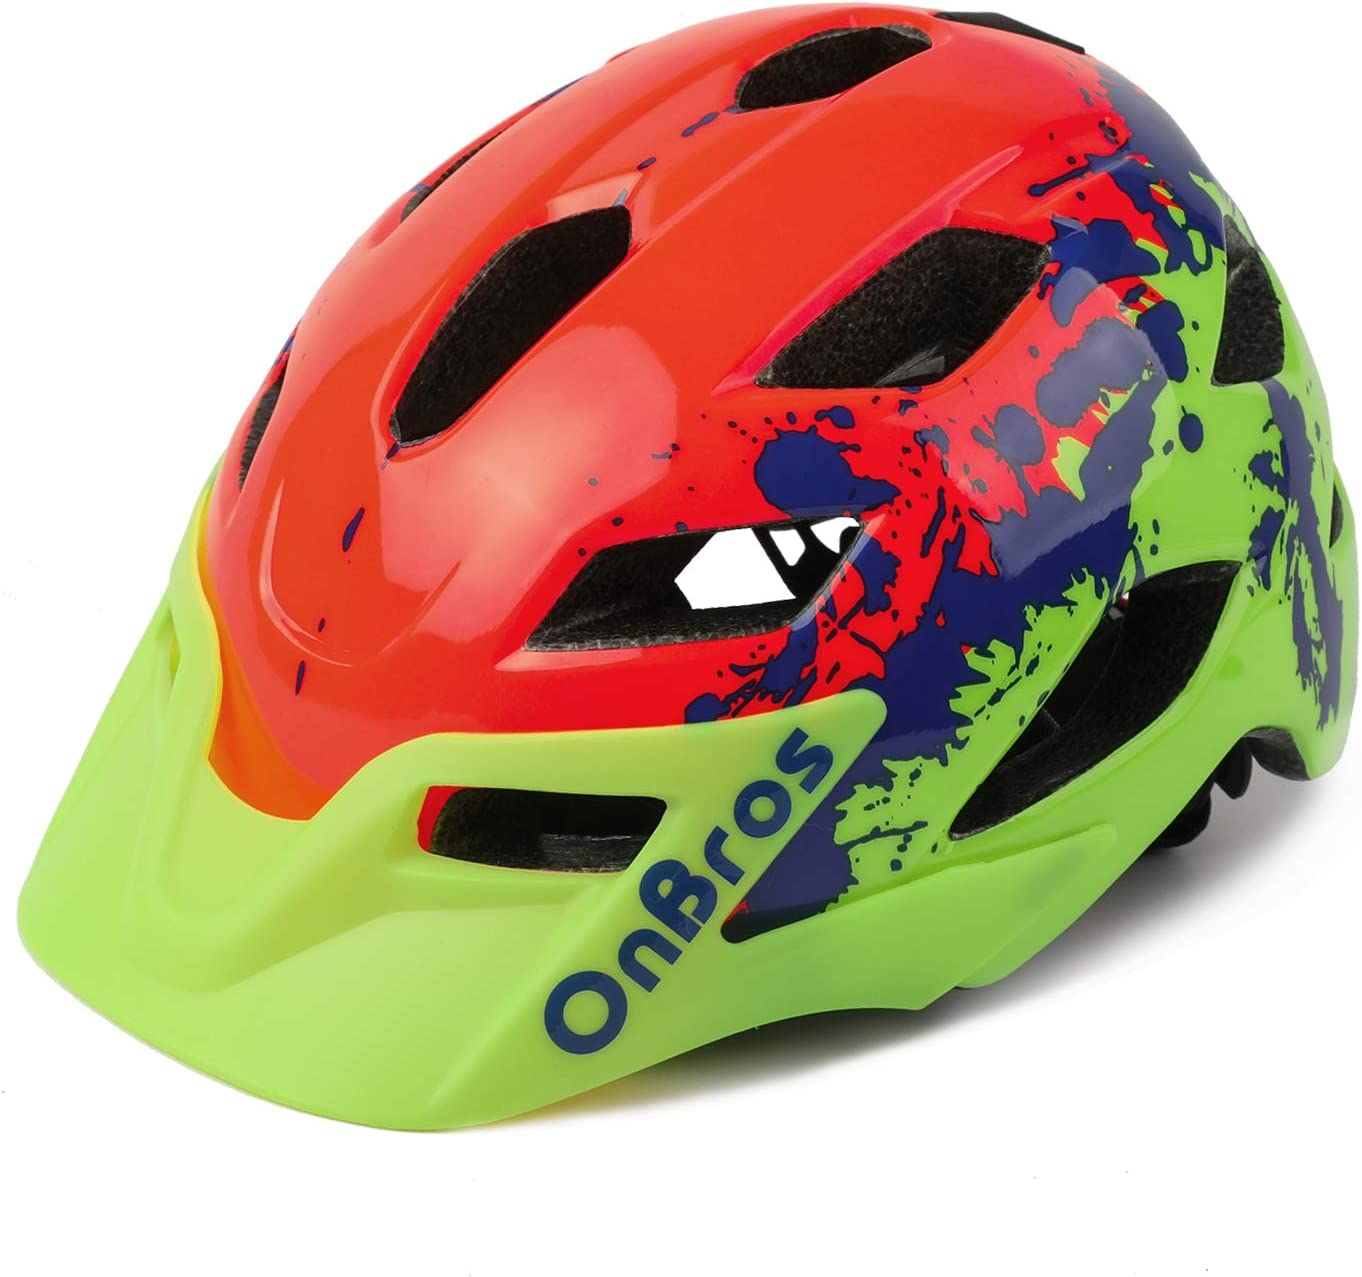 OnBros Kids Bike Helmet, Lightweight Cycling Helmet for Children, Size Adjustable Bicycle Helmets for Boys and Girls Age 5-13, 50-57cm